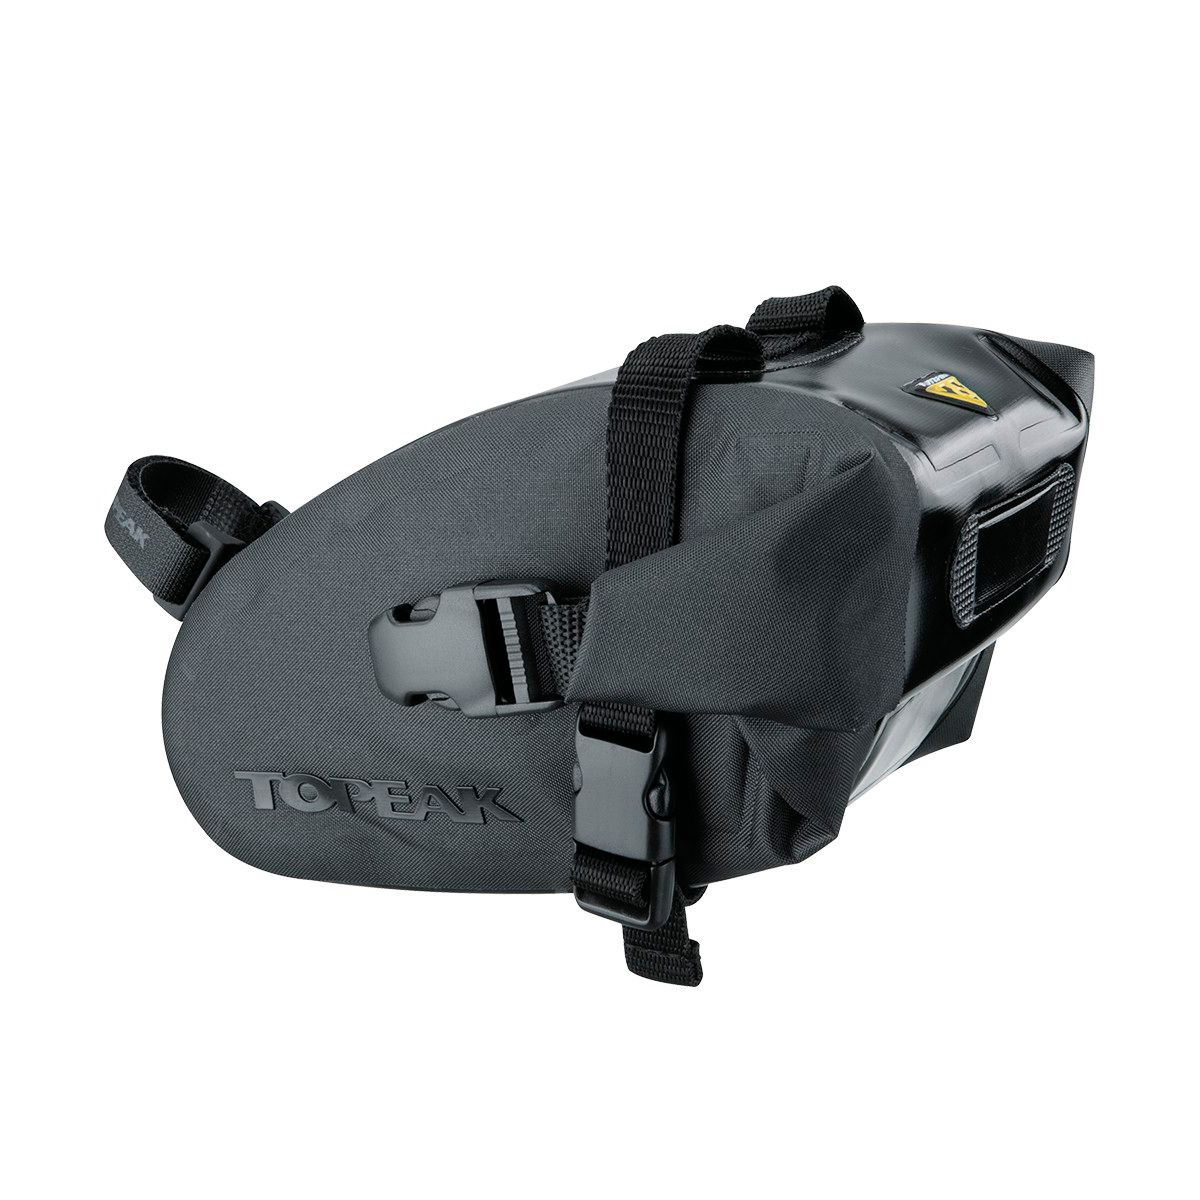 WEDGE DRYBAG STRAP MEDIUM saddle bag